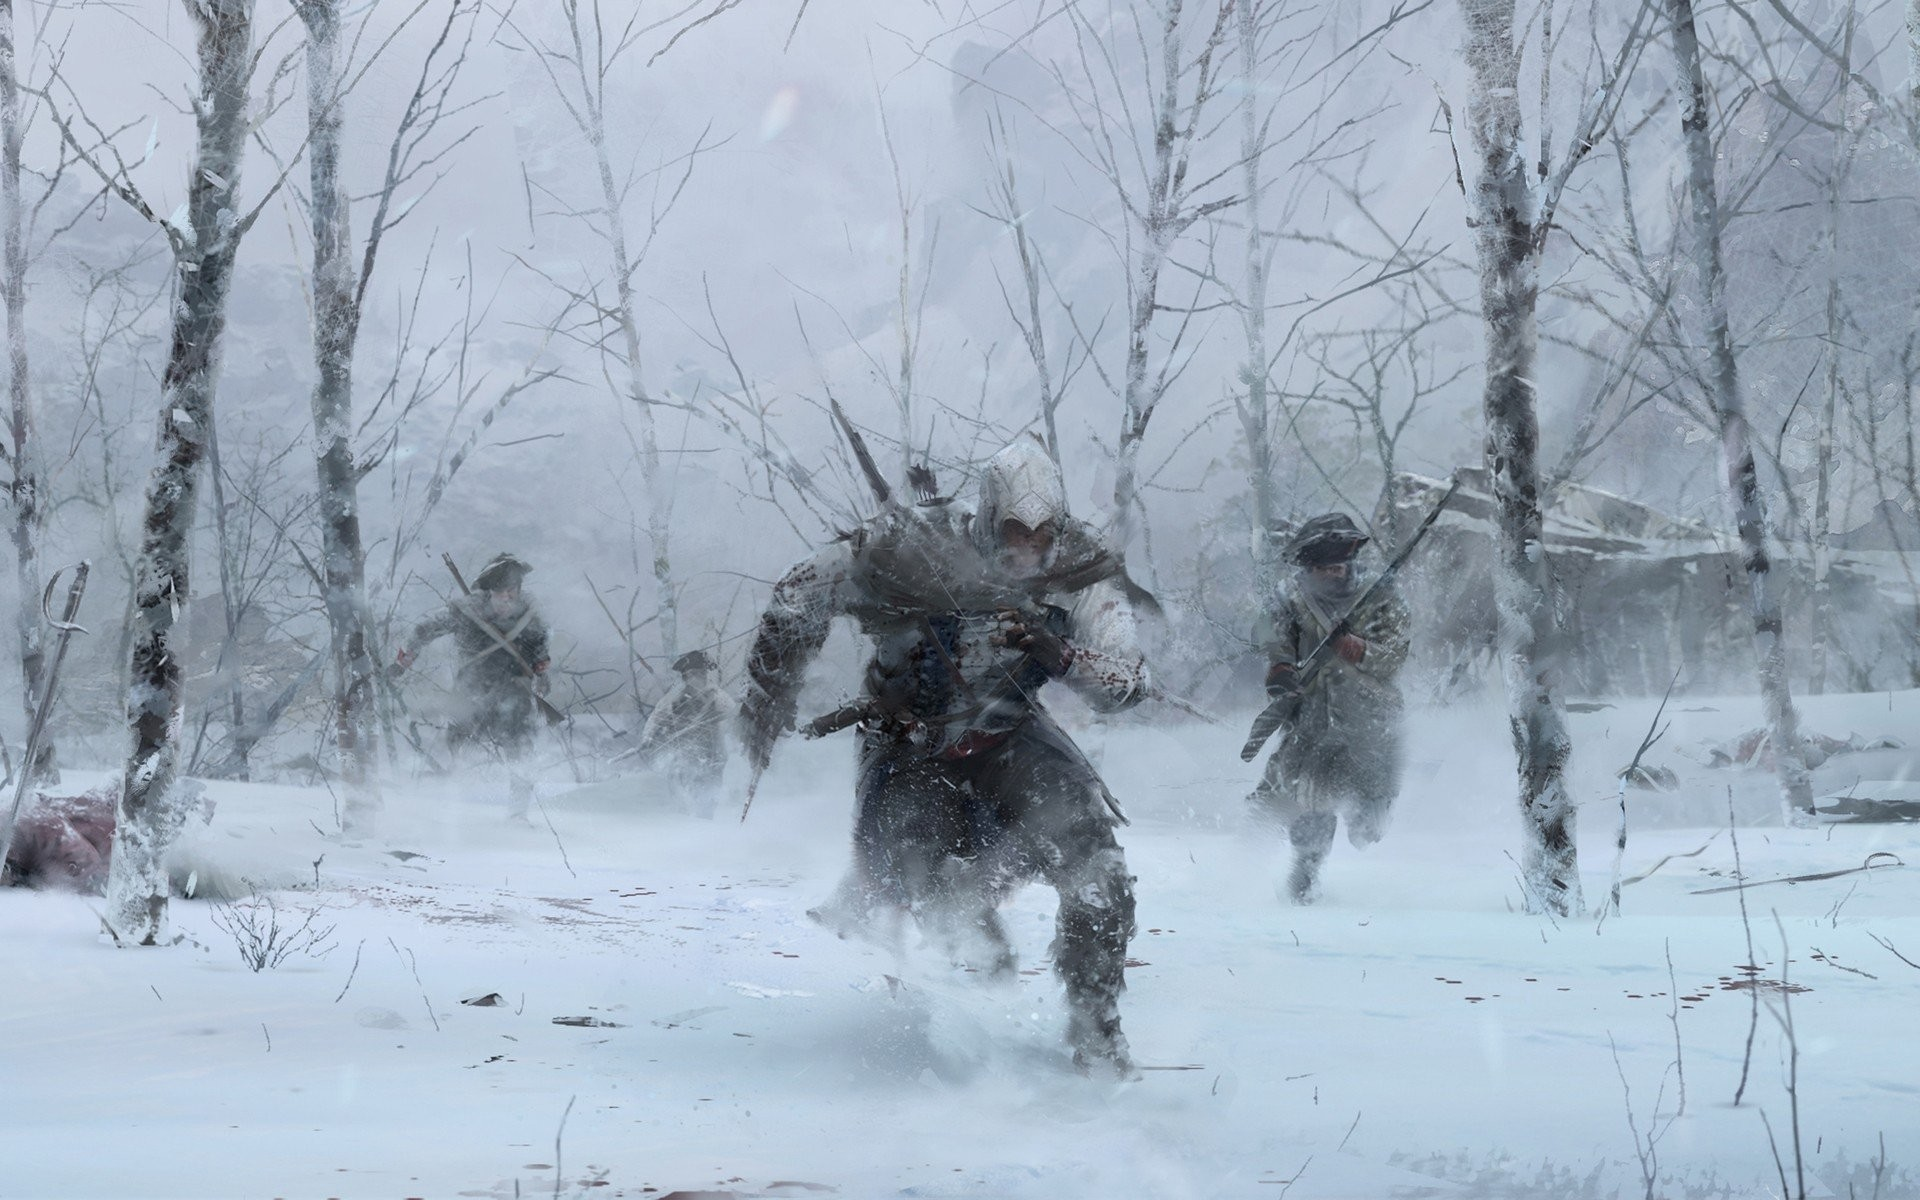 Artwork Assassins Creed 3 Drawings Forests Guard Killer Snow Video Games  Winter …